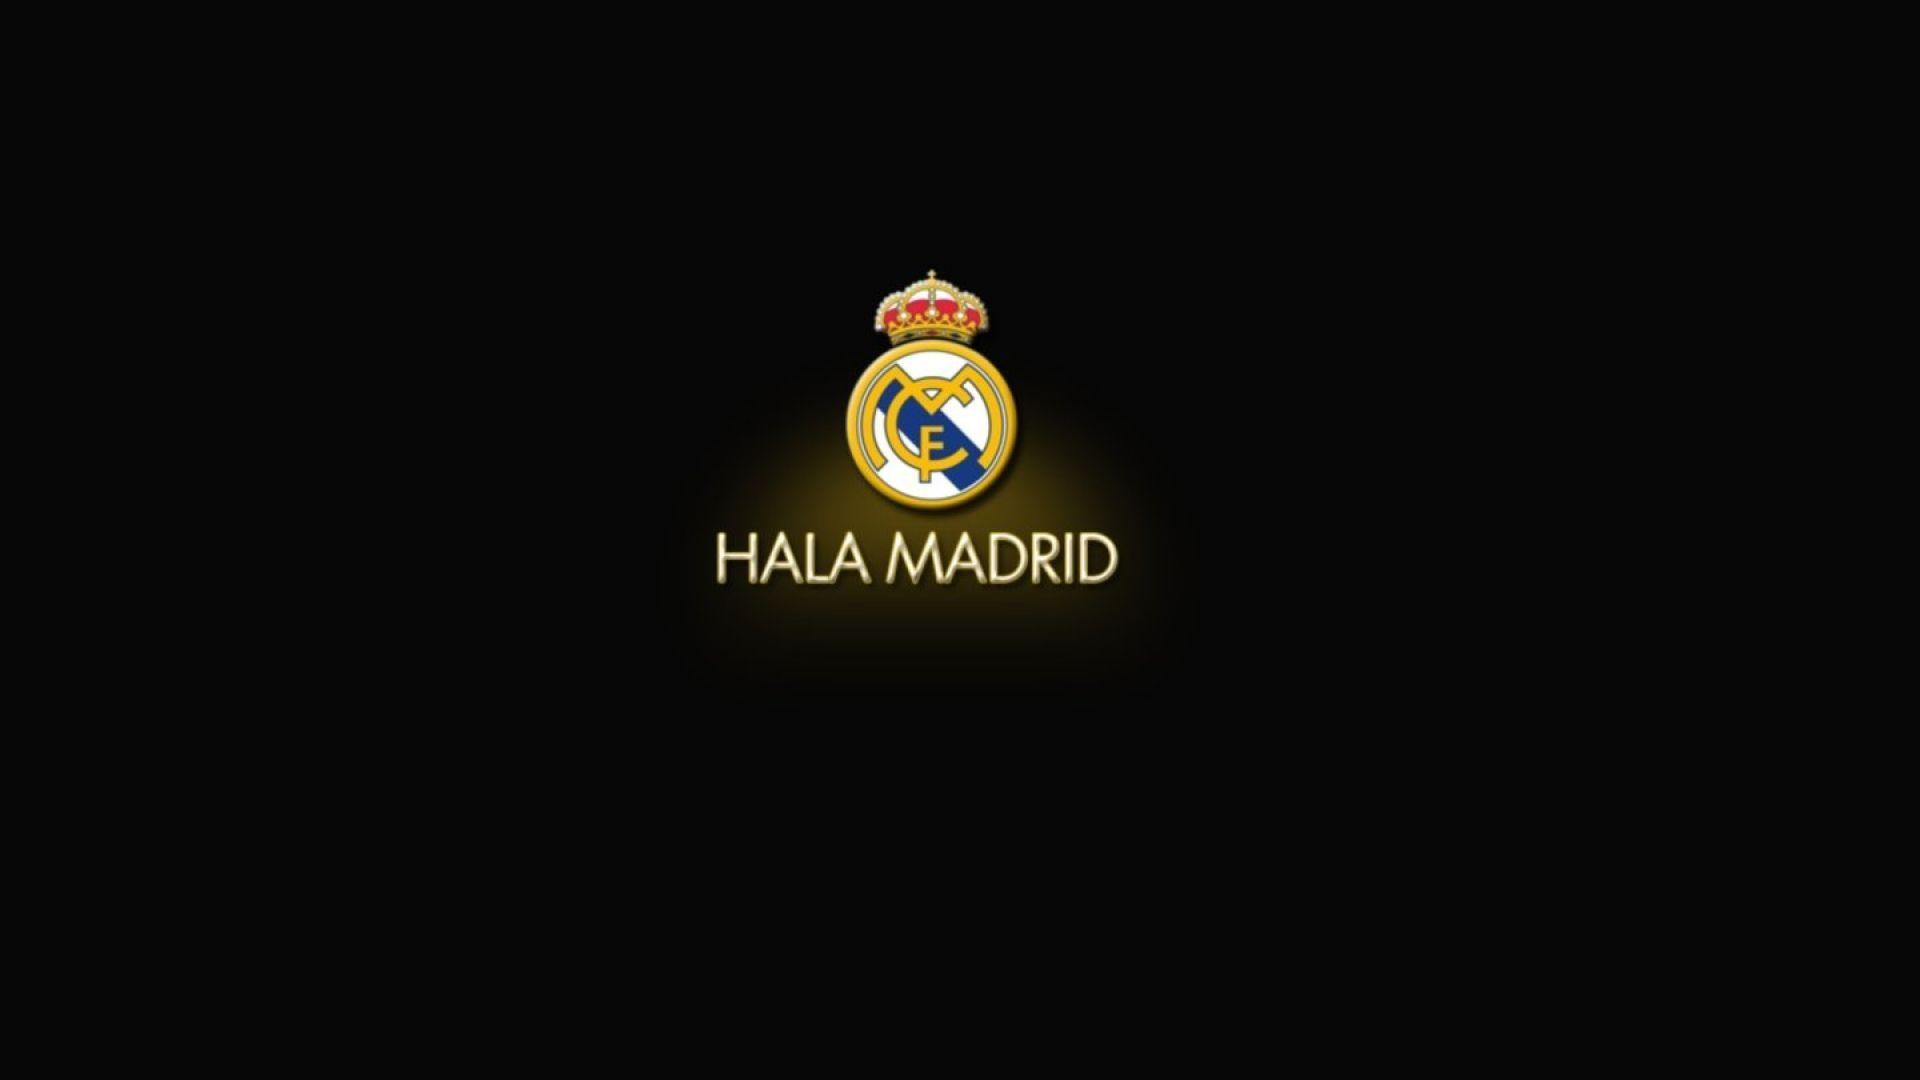 Real Logo Madrid Black Wallpapers #12618 Wallpaper | Cool ...